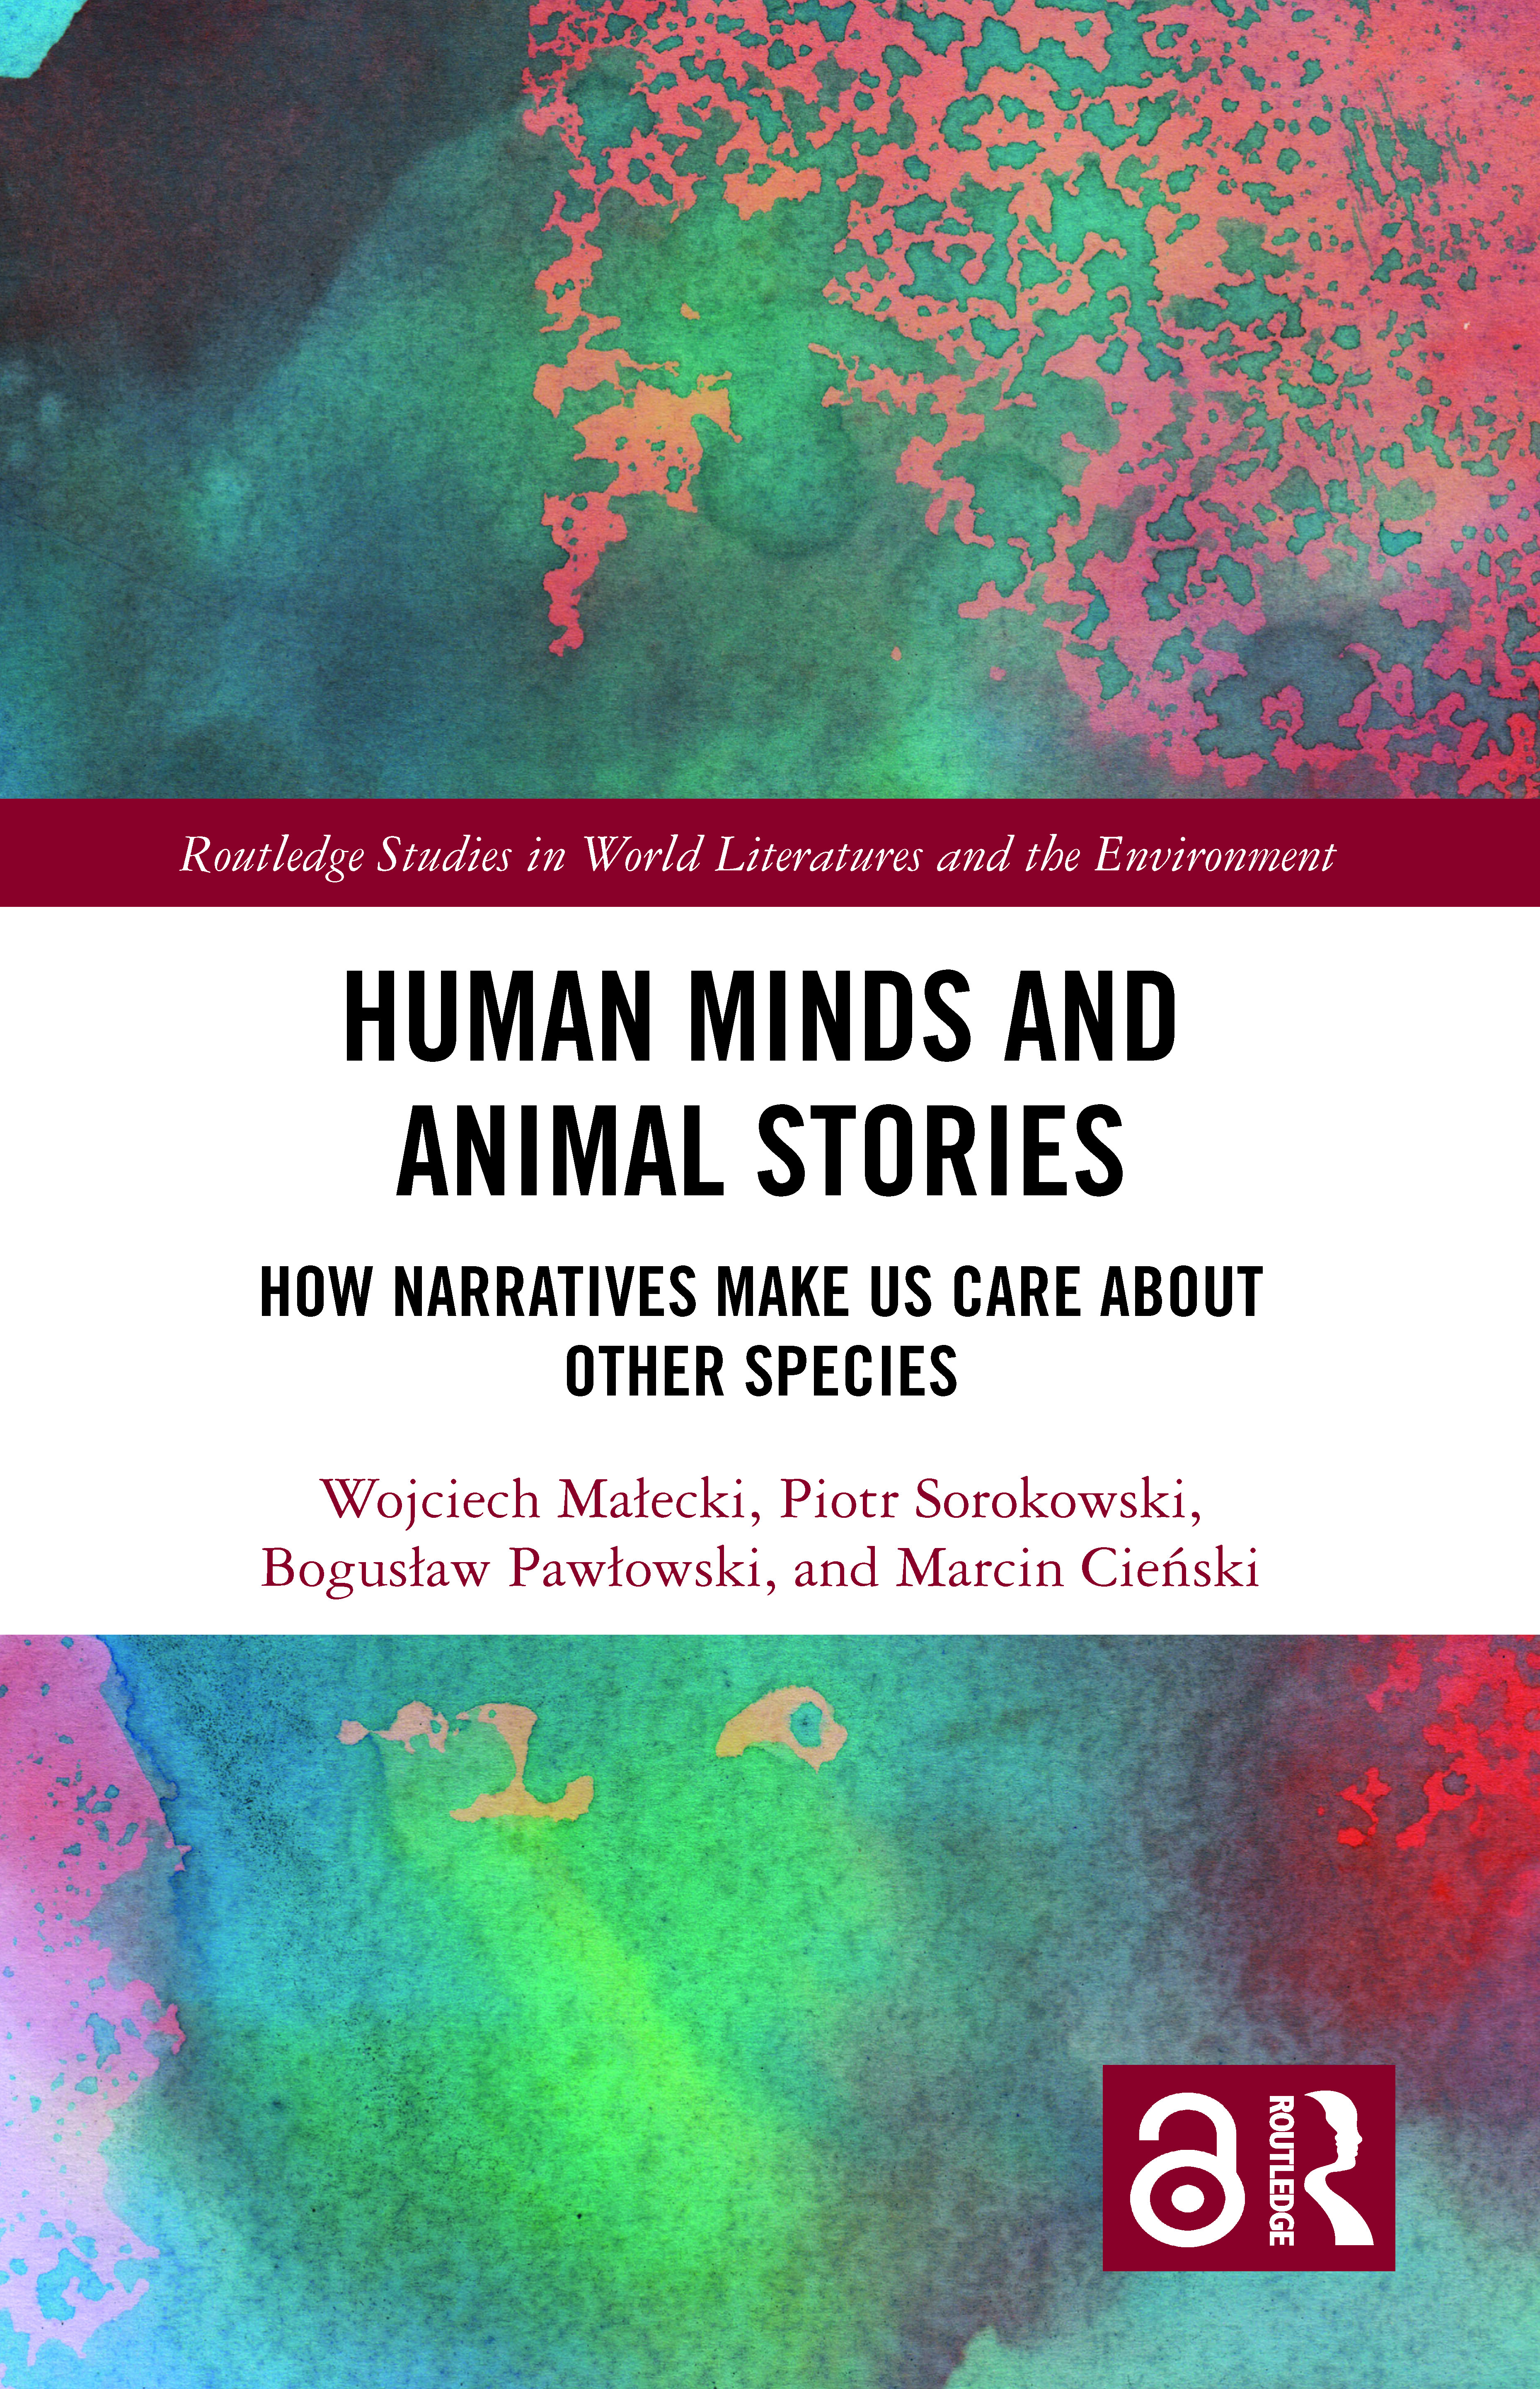 Human Minds and Animal Stories: How Narratives Make Us Care About Other Species book cover